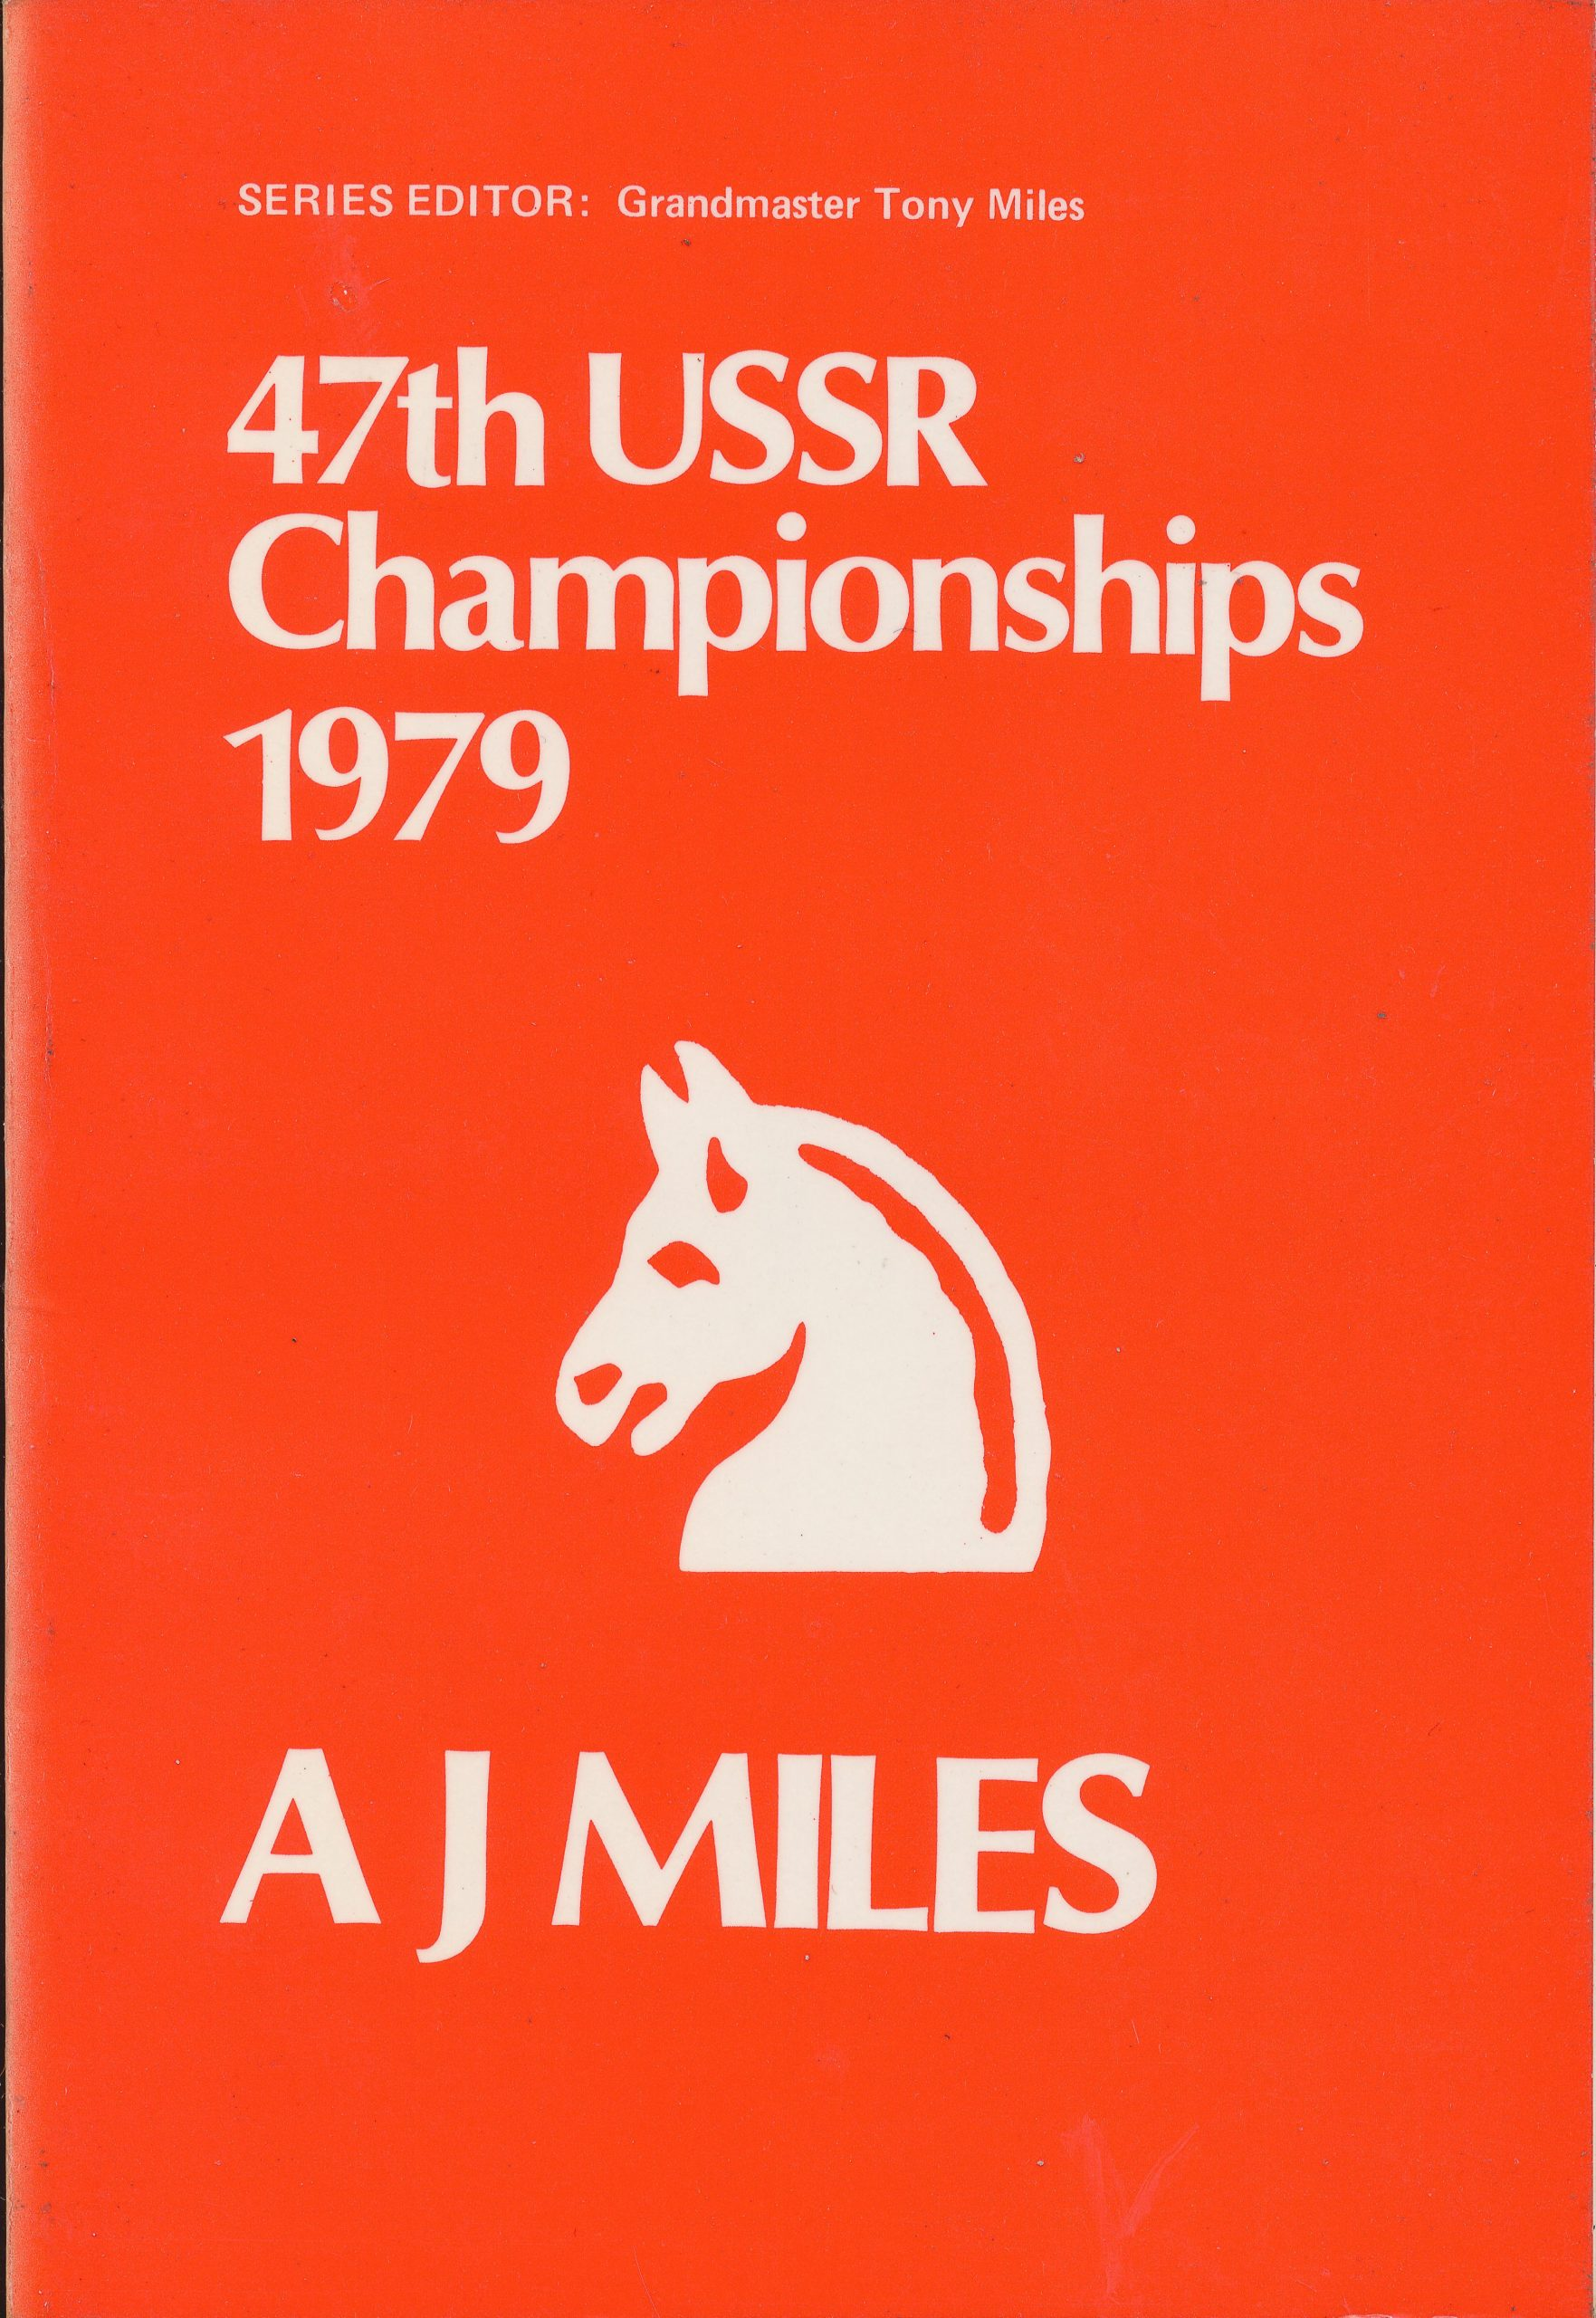 47th USSR Championships 1979, AJ Miles, The Chess Player, 1979, ISBN 0 906042 32 1